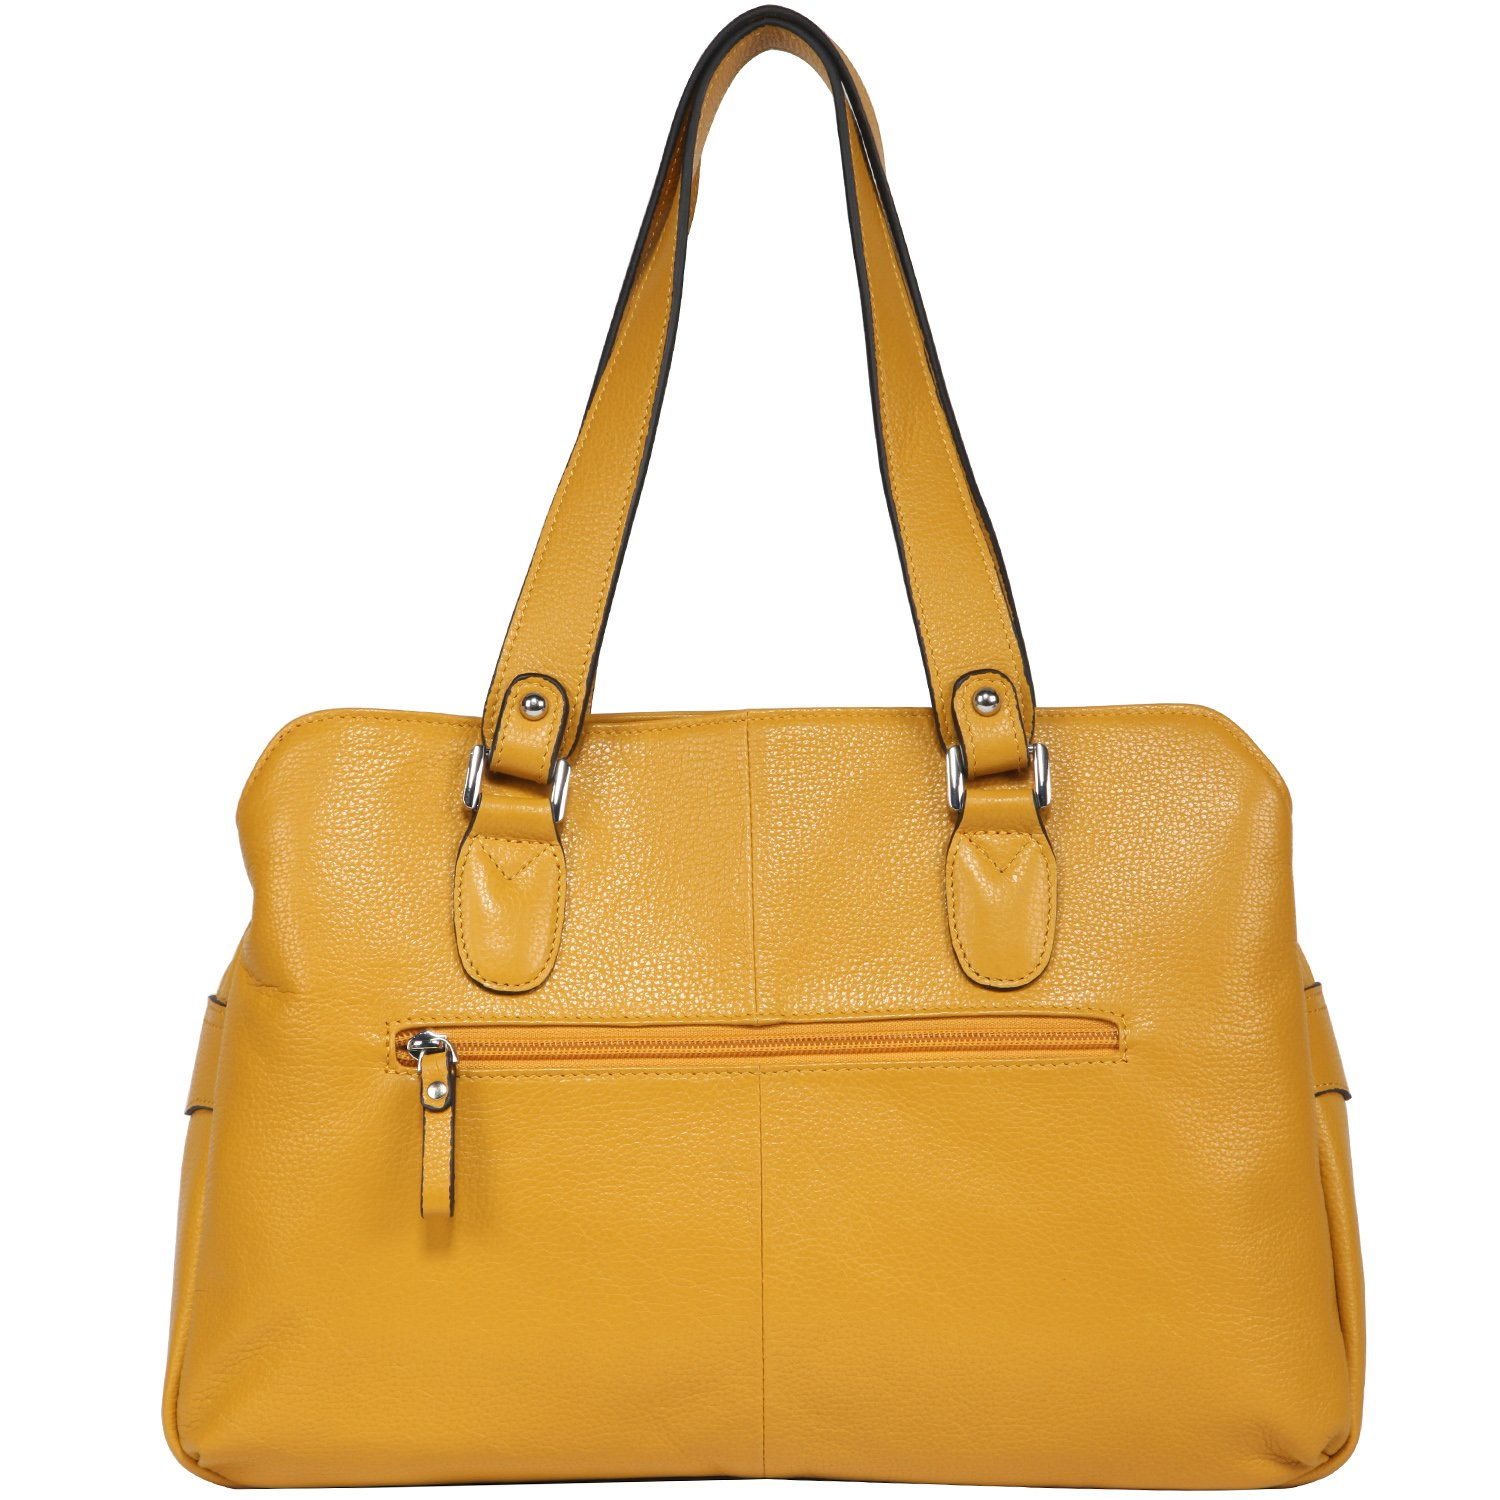 2a6bd67bc2 Amazon.com: Banuce Womens Colored Real Leather Shoulder Tote Bag Ladies  Handbags Double Zippered Top Handle Work Office Purse Yellow: Banuce